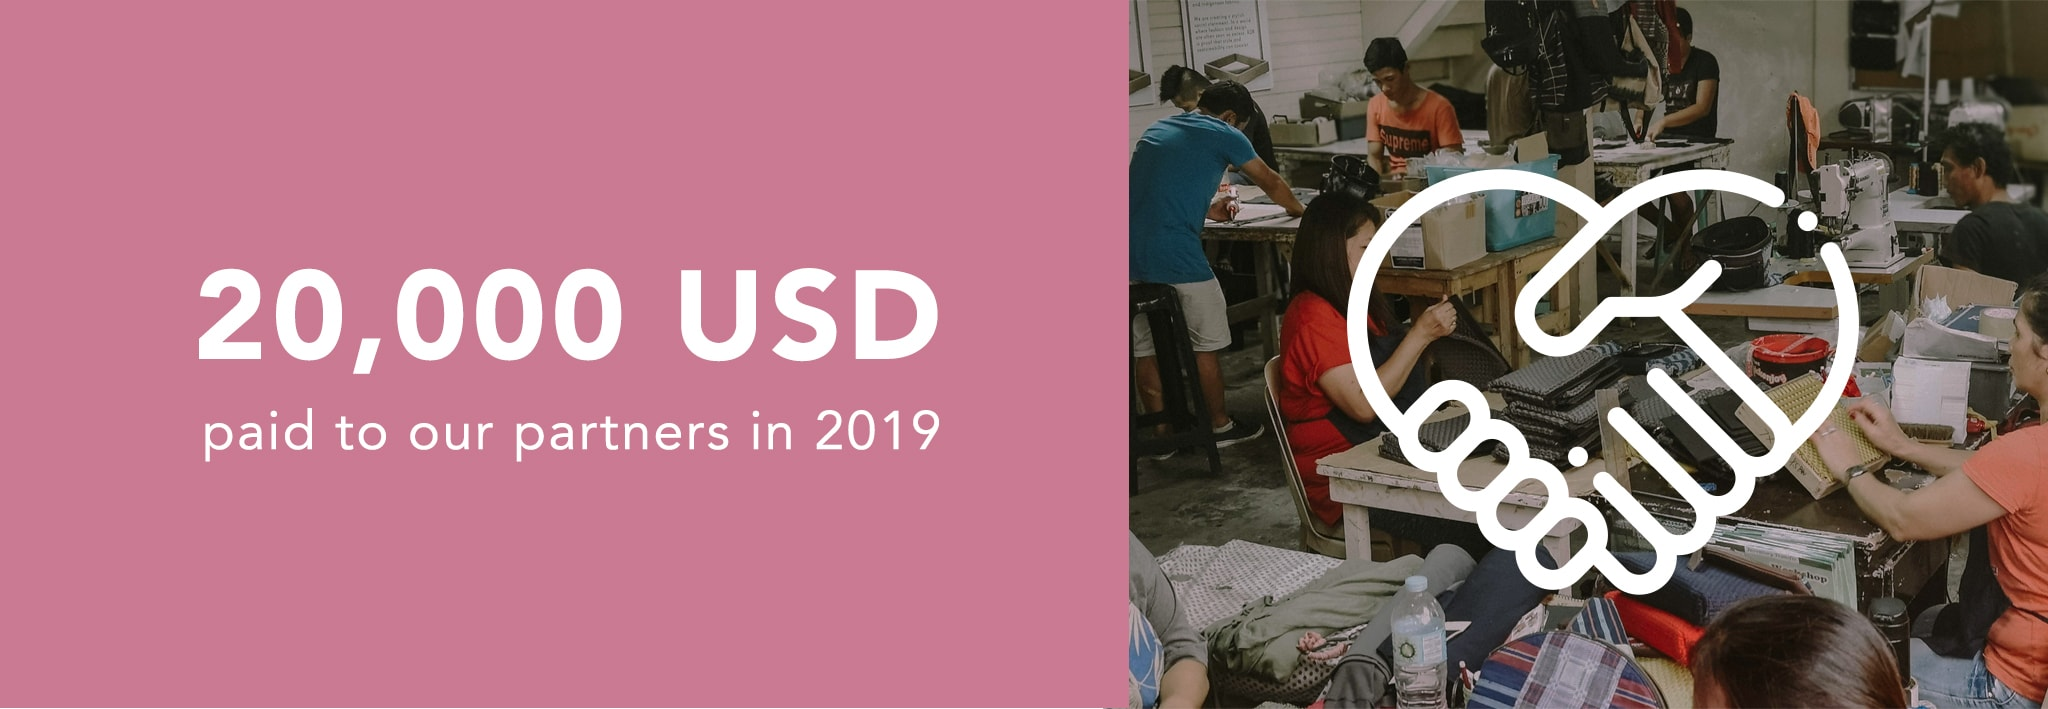 Cambio & Co. contributed 20,000USD to social enterprise partners in the Philippines in 2019.